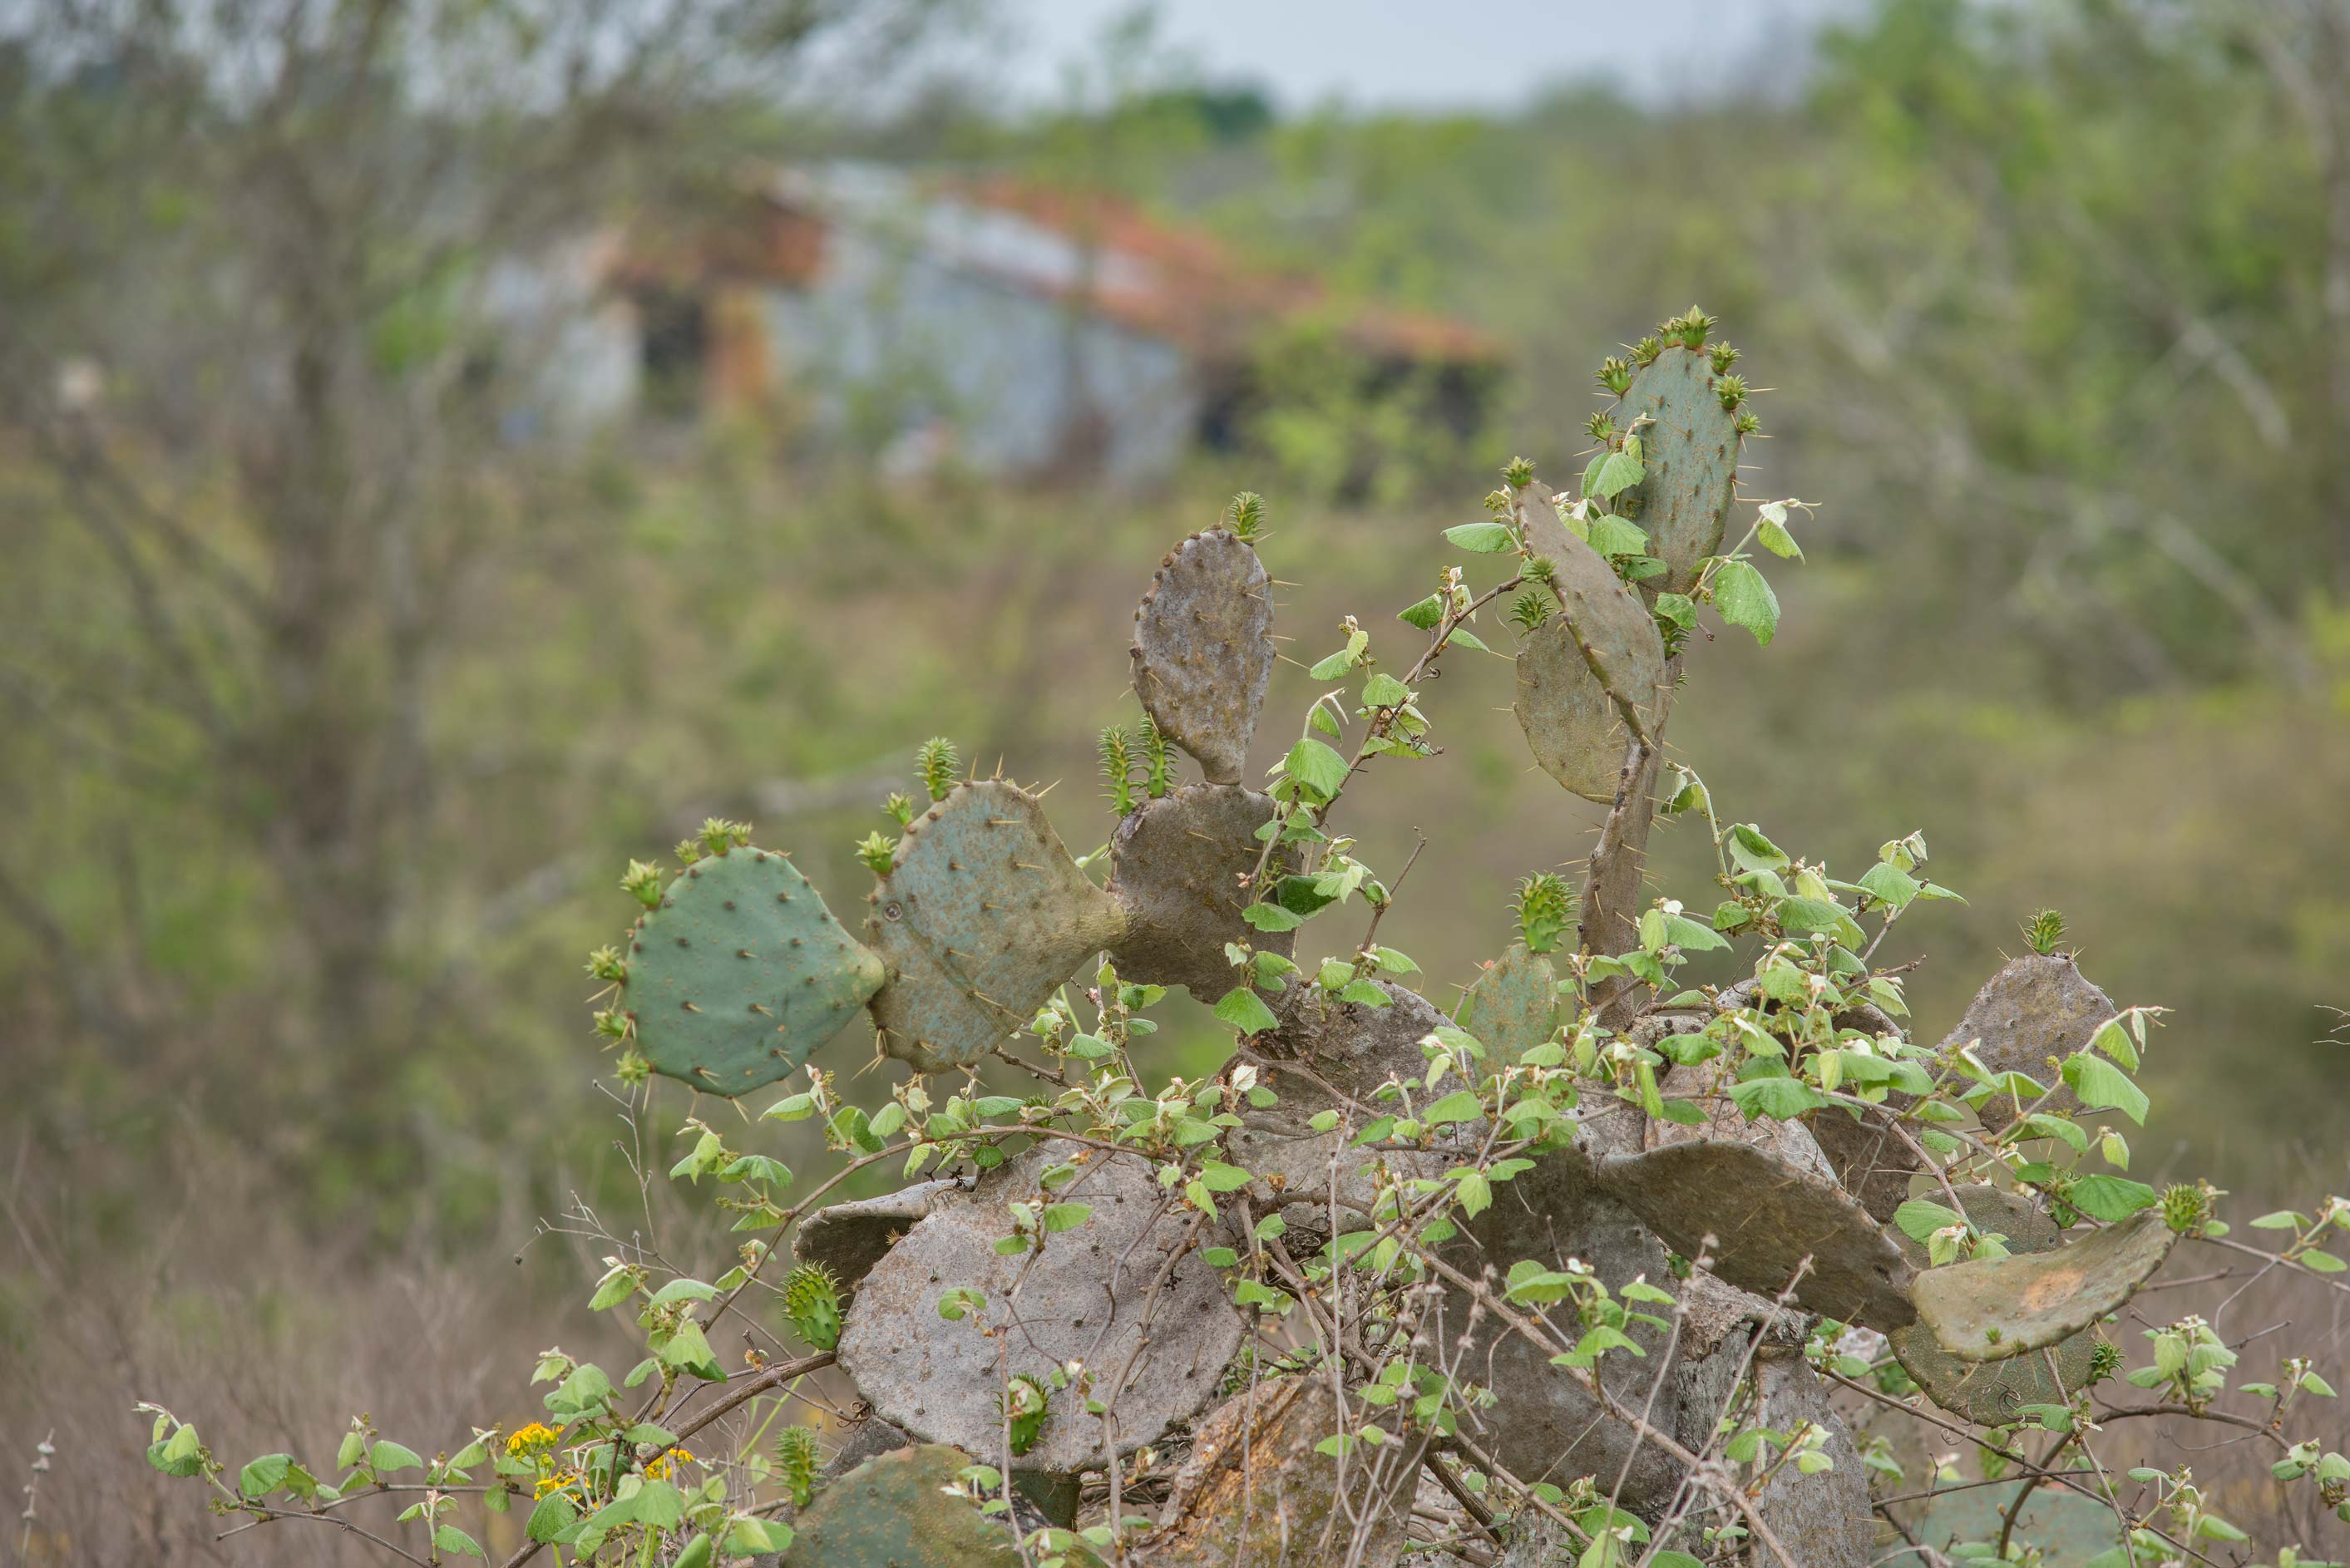 Pads of prickly peas cactus (Opuntia) in...State Historic Site. Washington, Texas